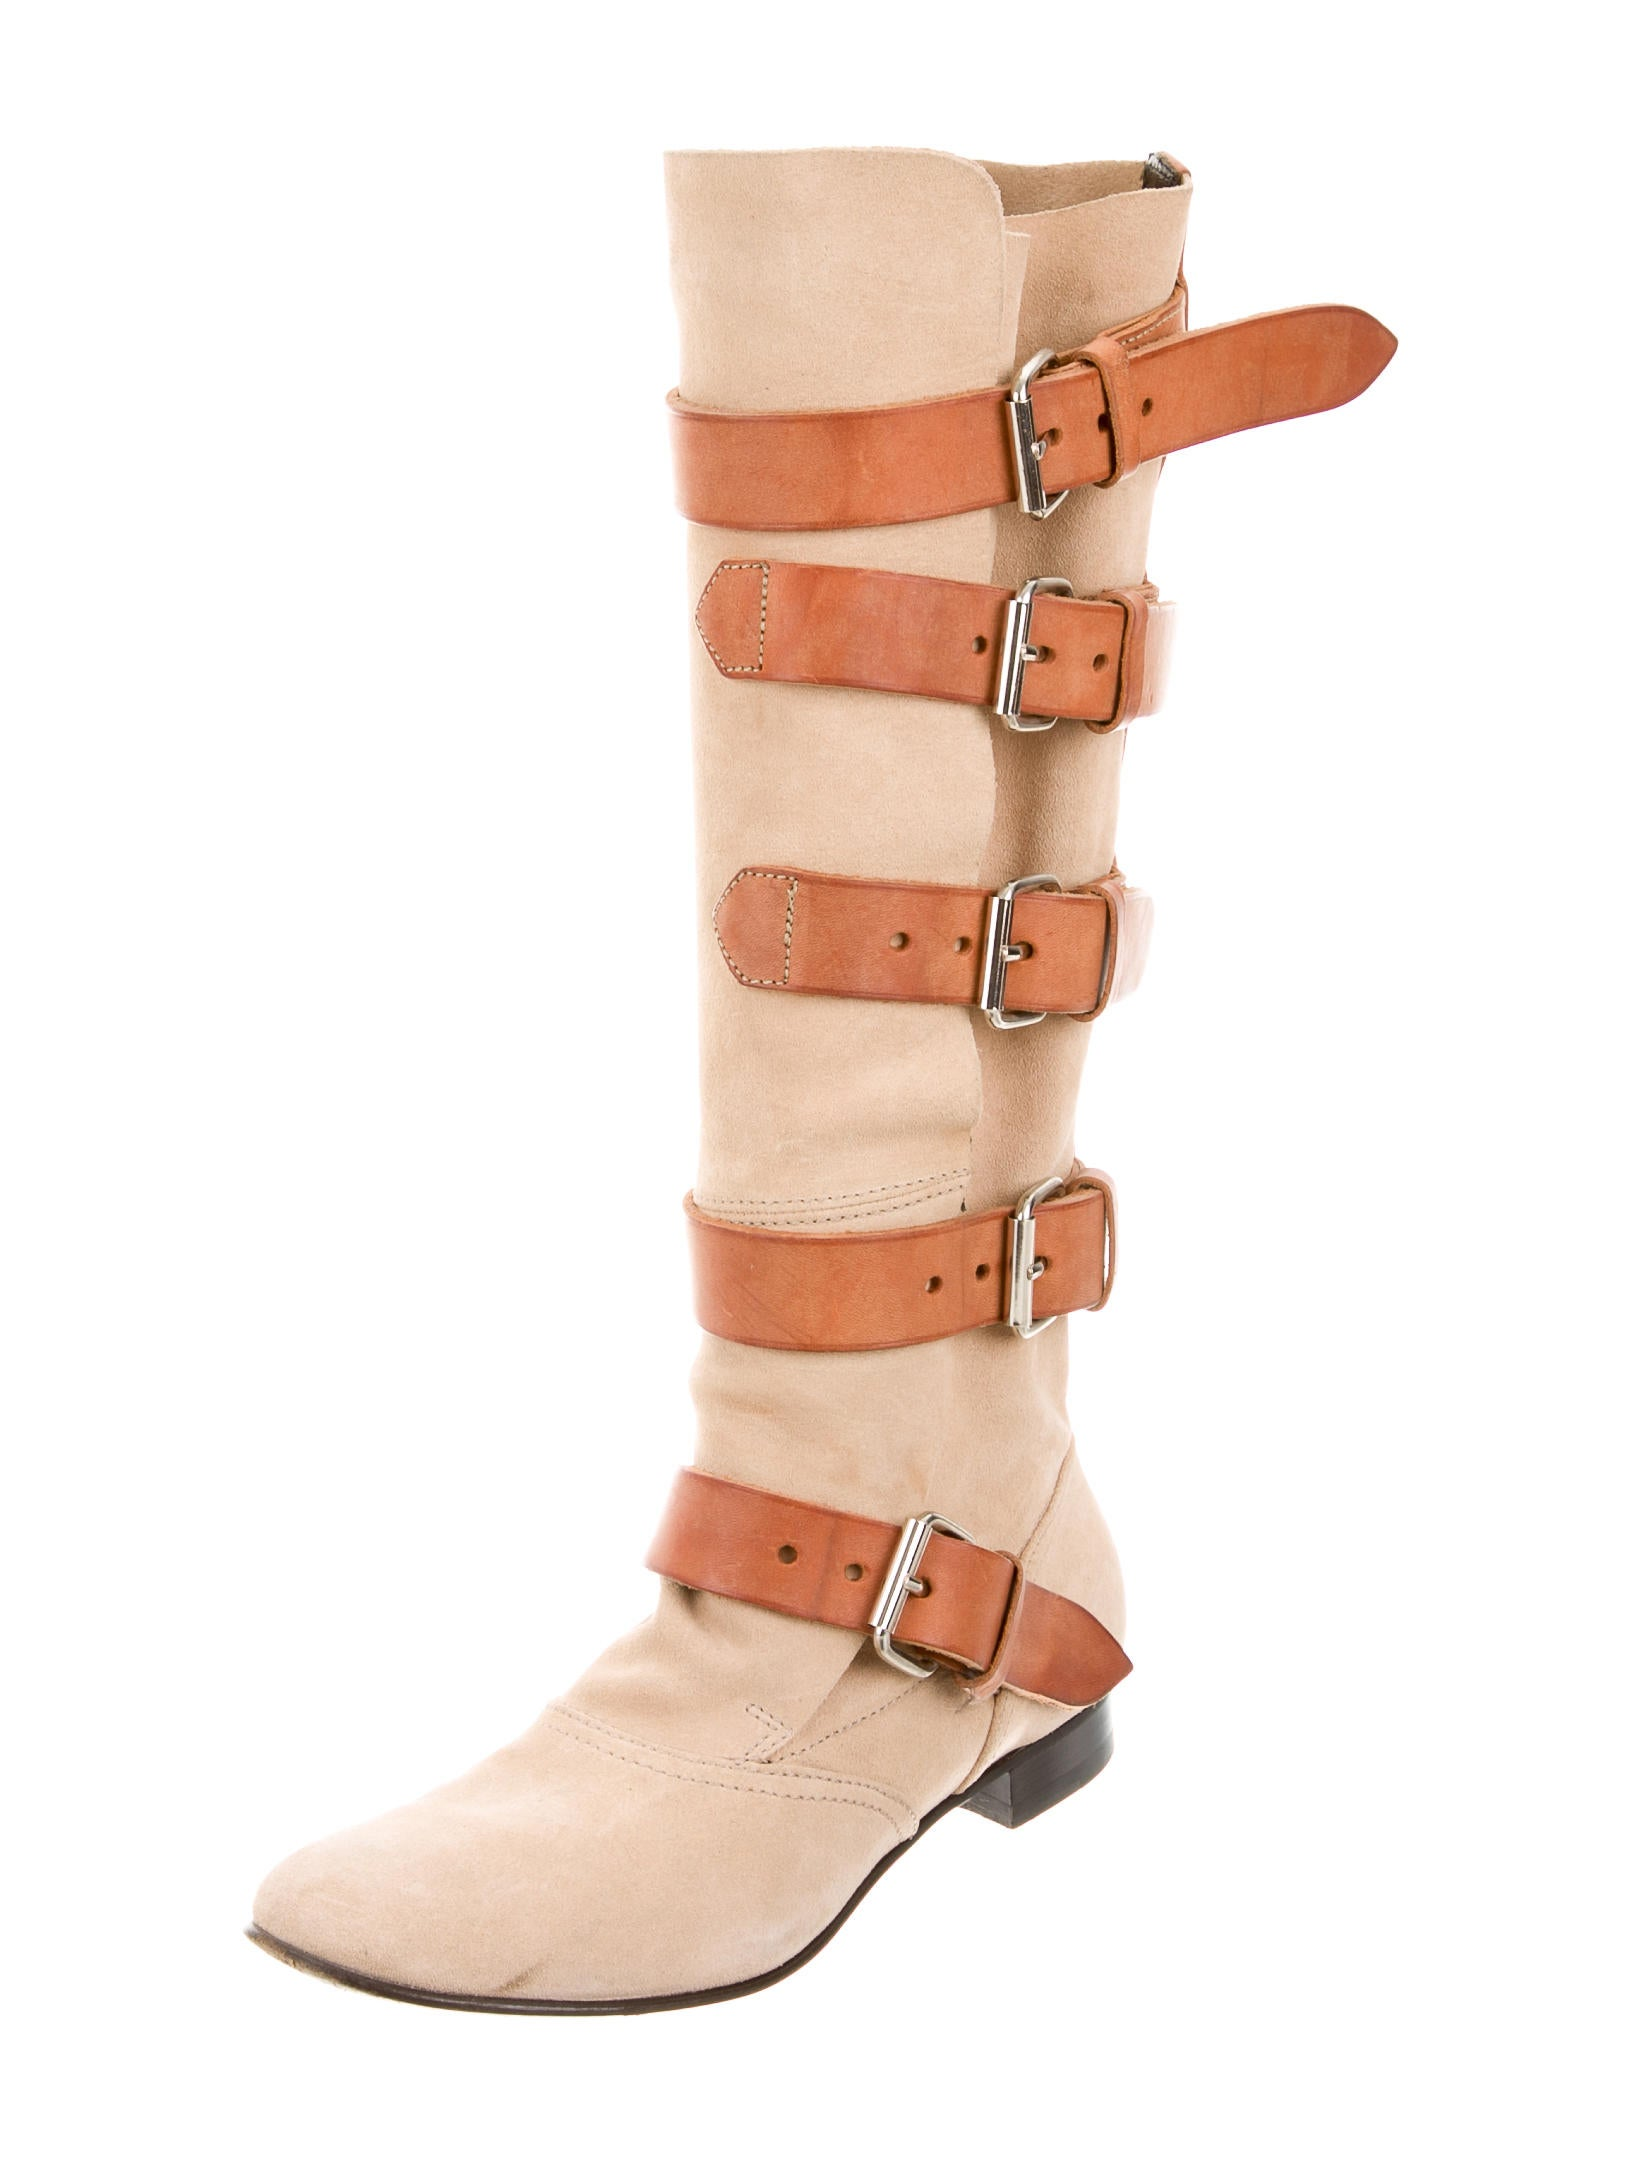 vivienne westwood suede buckle embellished boots shoes viv20769 the realreal